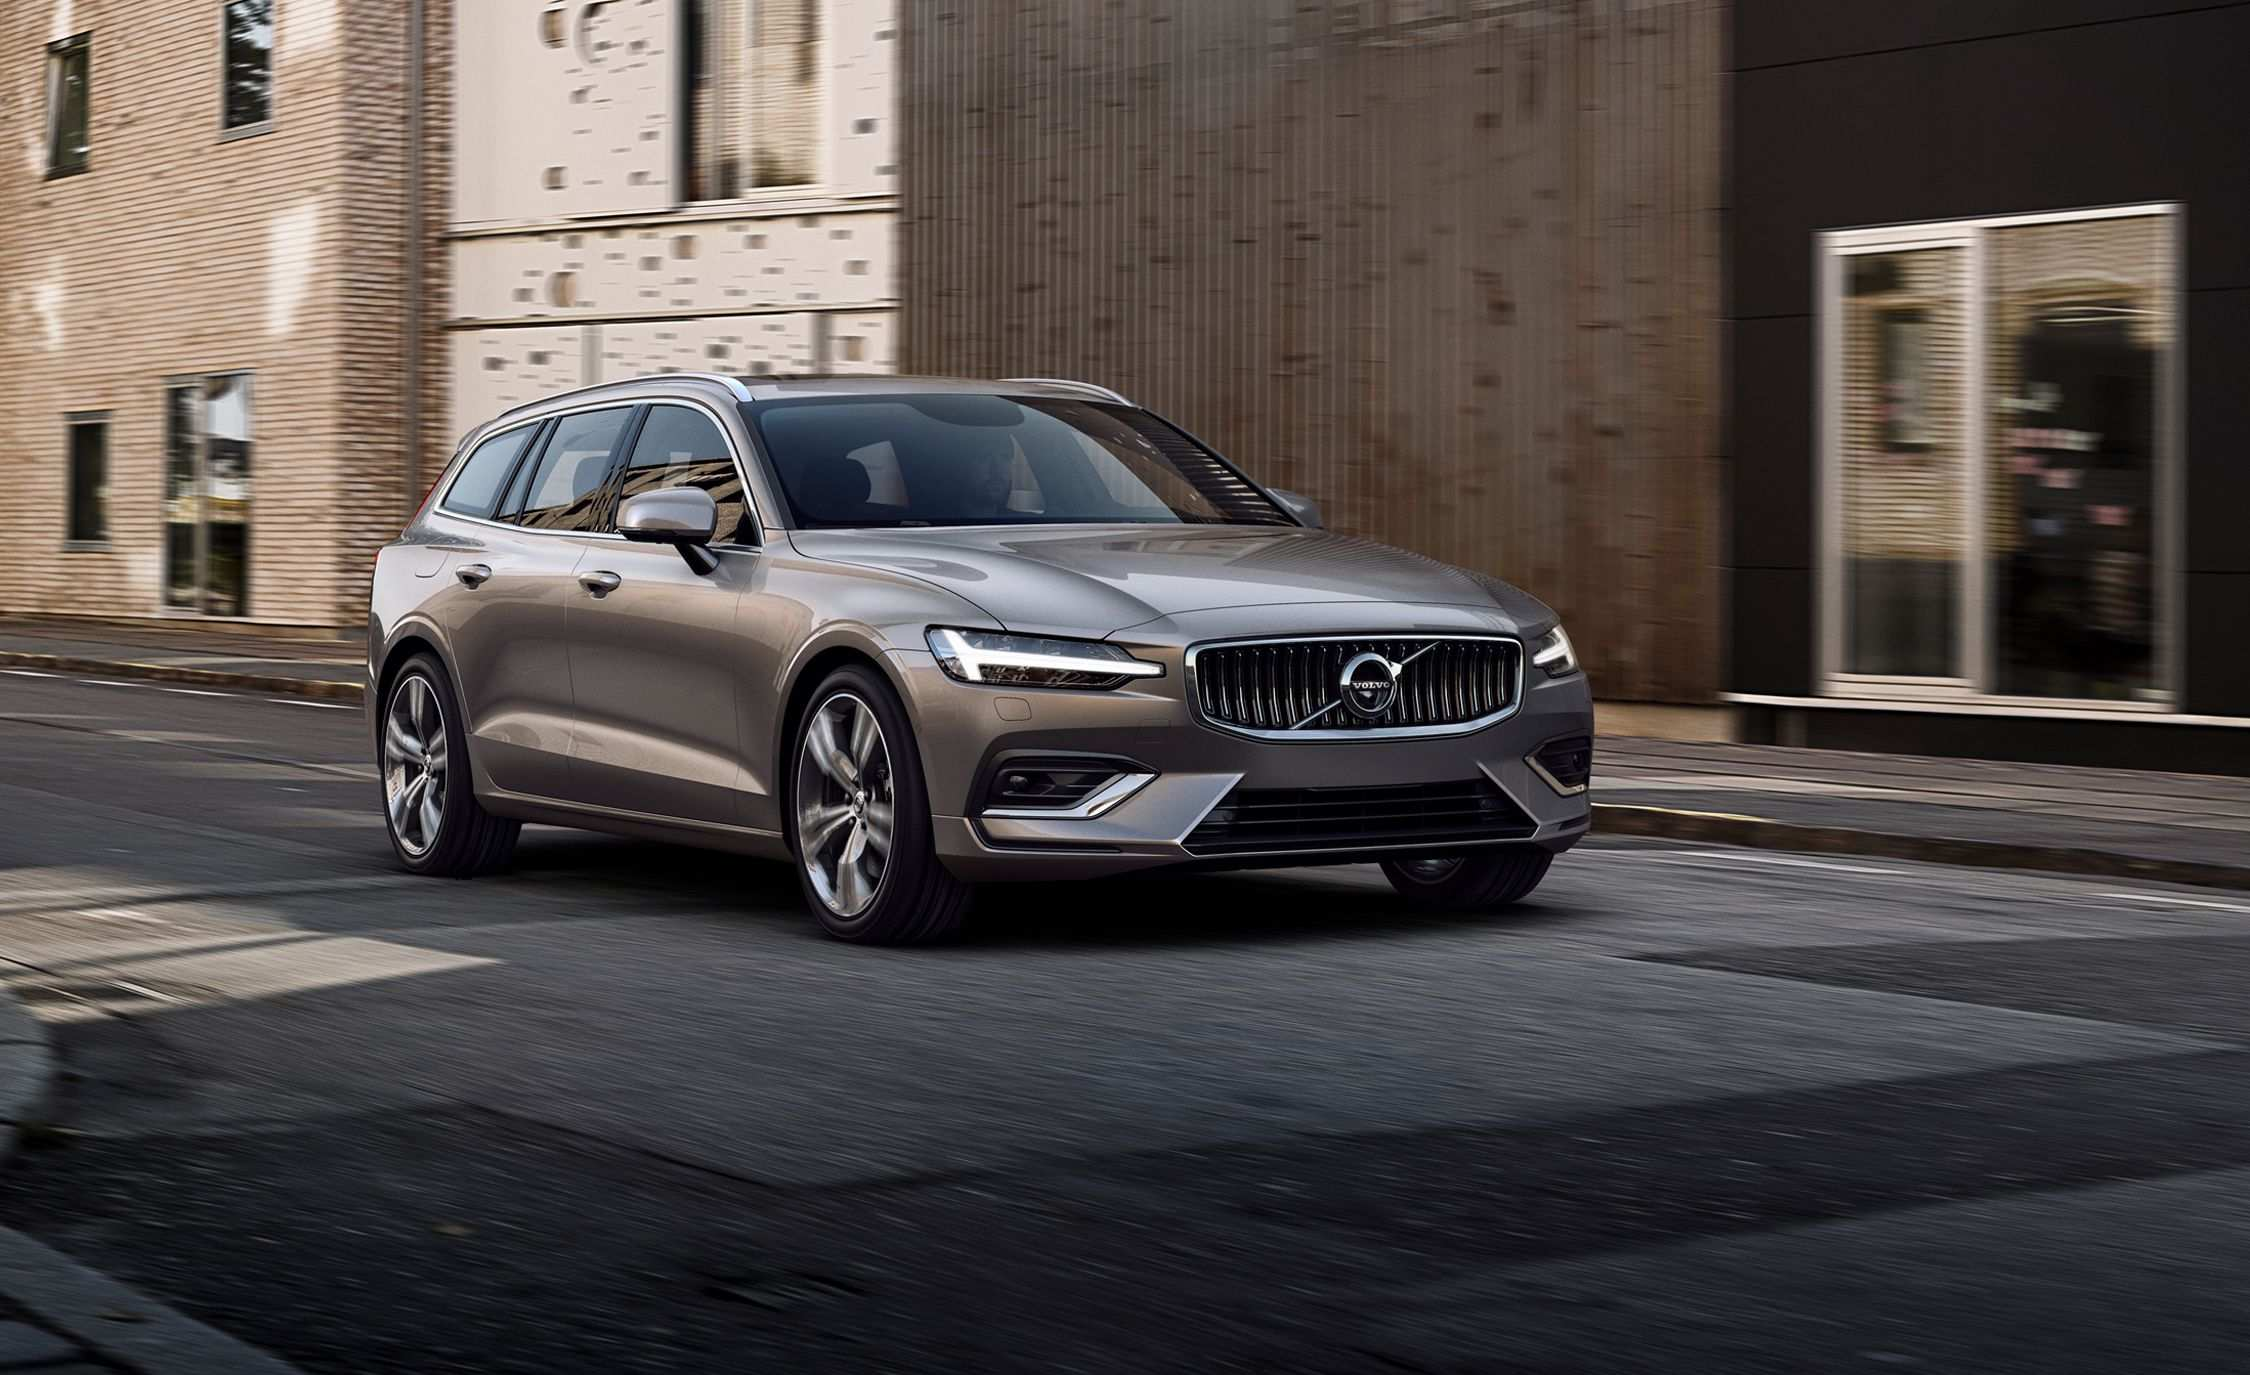 39 Great 2020 Volvo V60 Length Price and Review for 2020 Volvo V60 Length